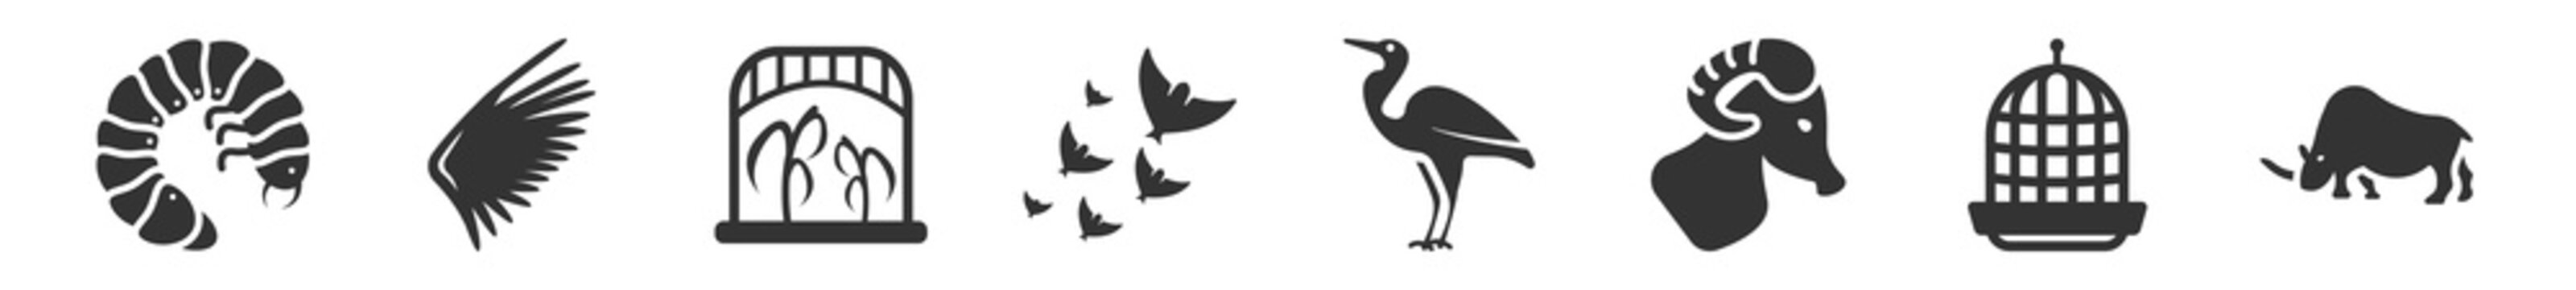 filled set of animals icons. glyph vector icons such as grub, wing, herpetarium, flock of birds, heron, coelodonta. vector illustration.